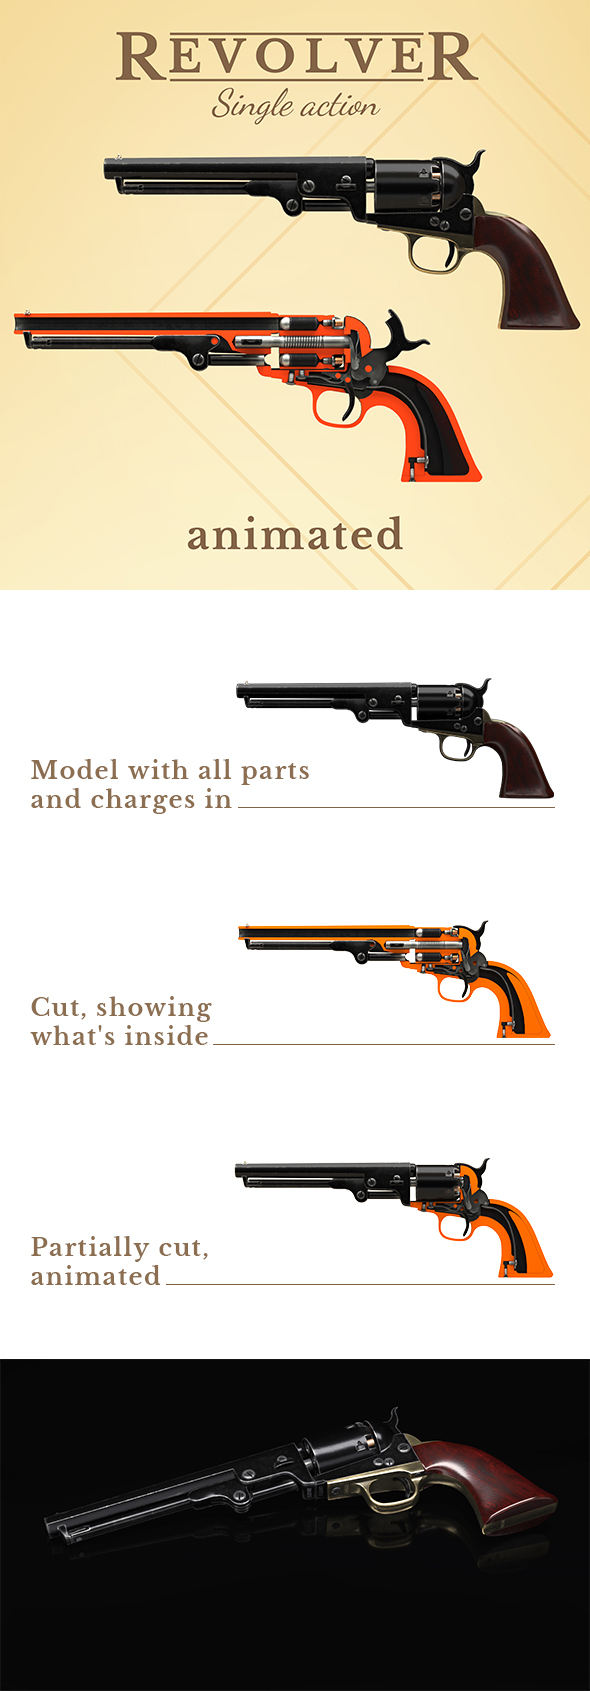 Single action revolver, animated